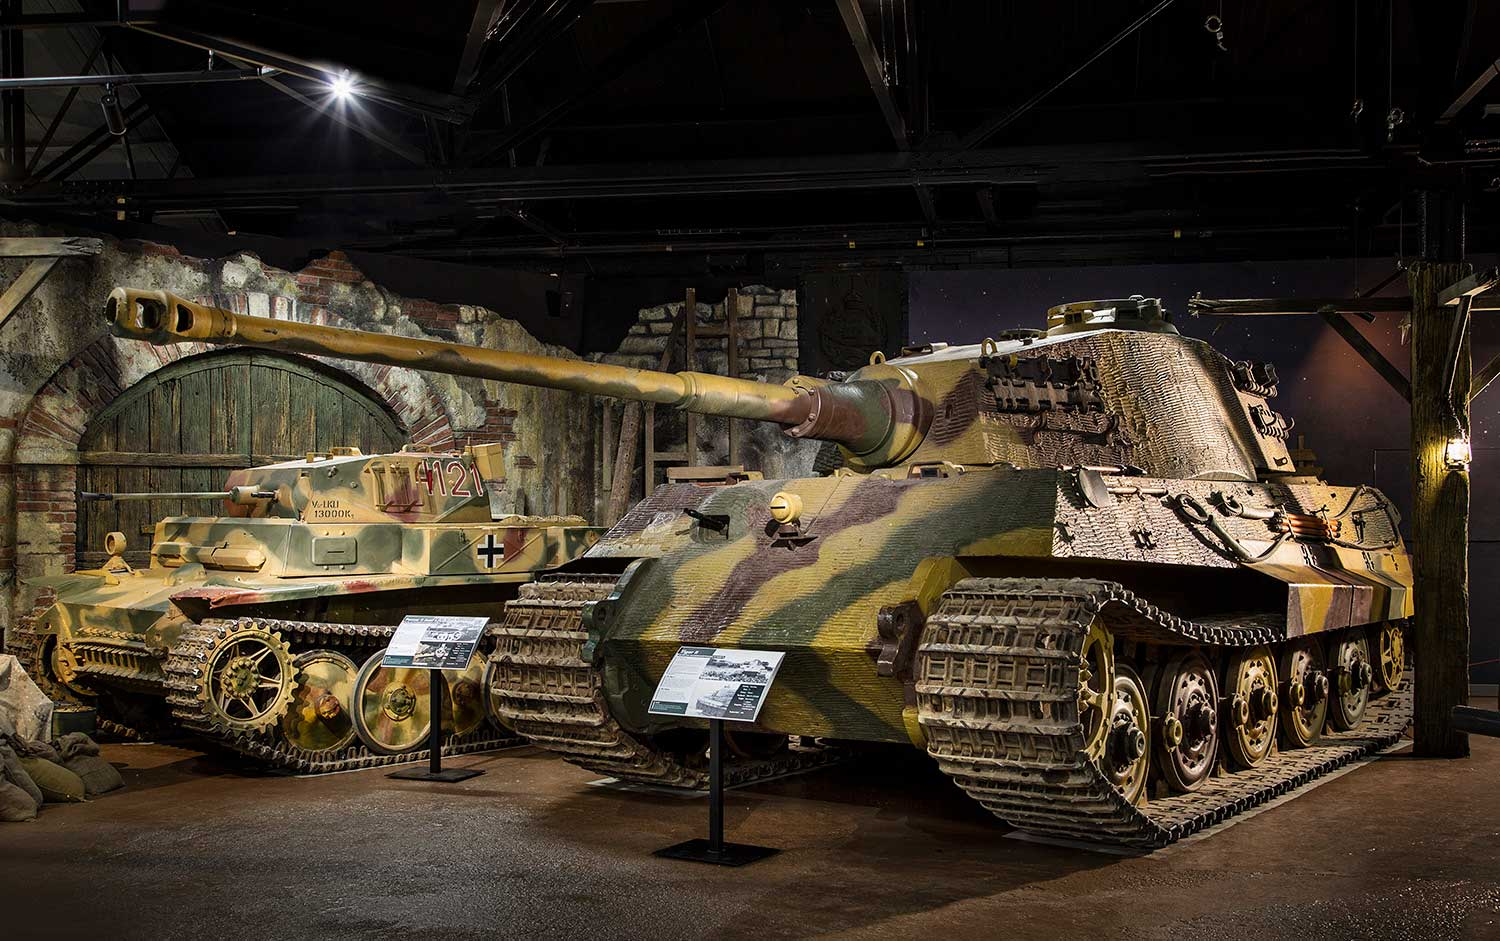 The Tank Museum Is Looking Forward To Welcoming Visitors For The First Time This Year On Monday 17 May